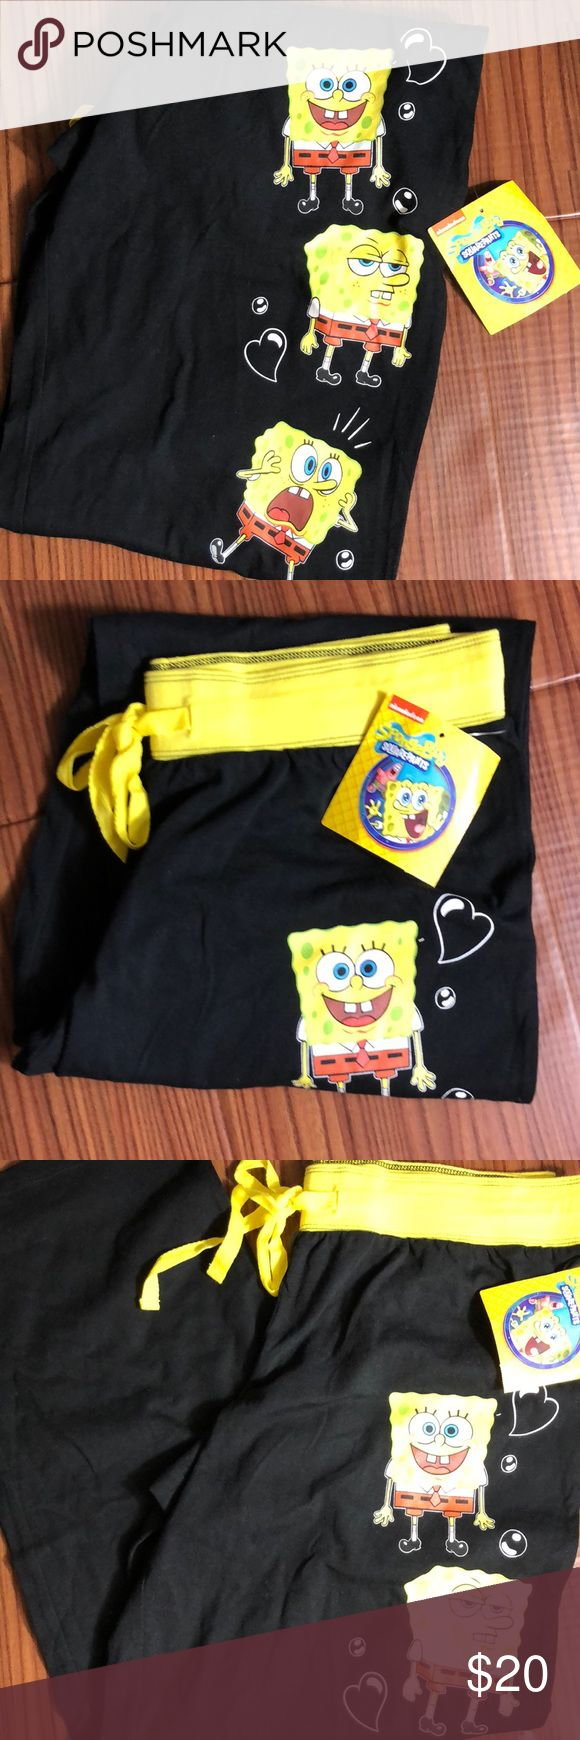 "NICKELODEON SpongeBob SquarePants Pajama Bottoms Brand new with tags.  Print featuring Nickelodeon's SpongeBob SquarePants.  Pajama has draw stringvand garterized waist.  Materials: Cotton & Polyester  Measurements (approx and taken while item is laying flat):  Waist 15"" Inseam 28""  Rise 9.5""    No trades We are a smoke and pet-free home. Nickelodeon Intimates & Sleepwear Pajamas"